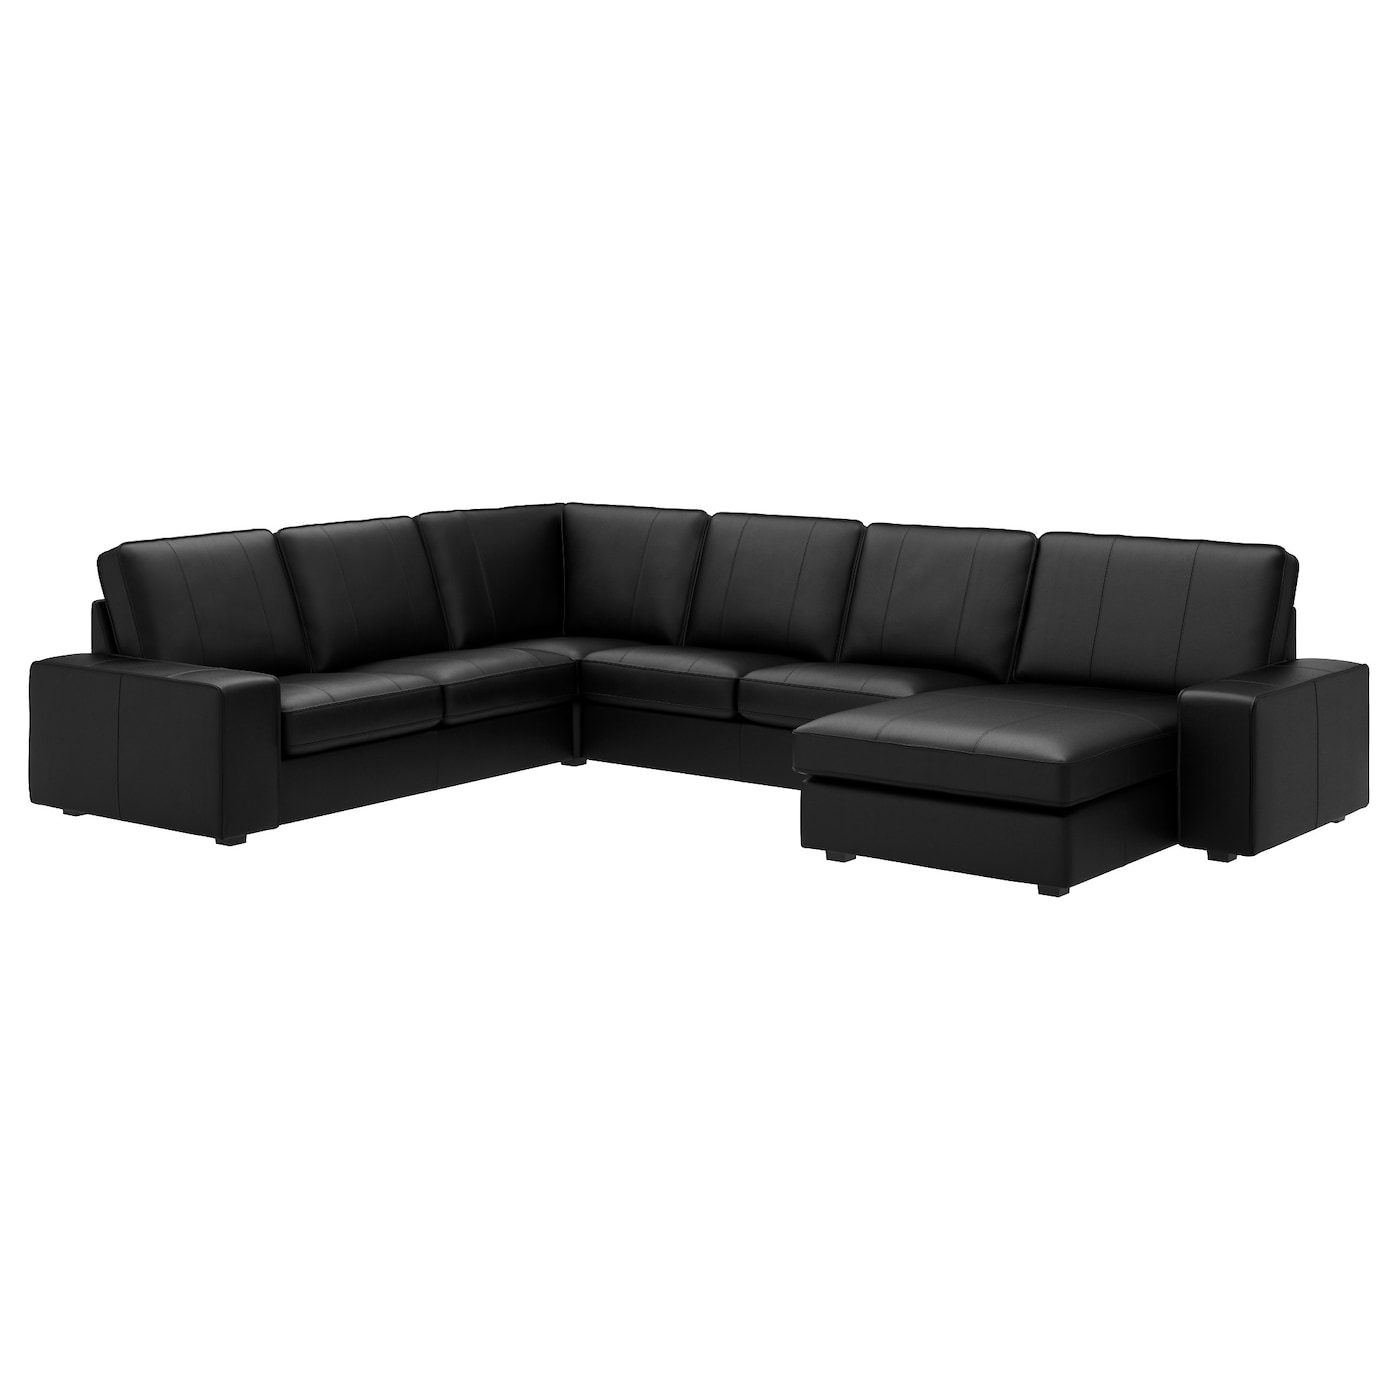 Kivik corner sofa 5 seat with chaise longue grann bomstad for 5 seater sofa with chaise